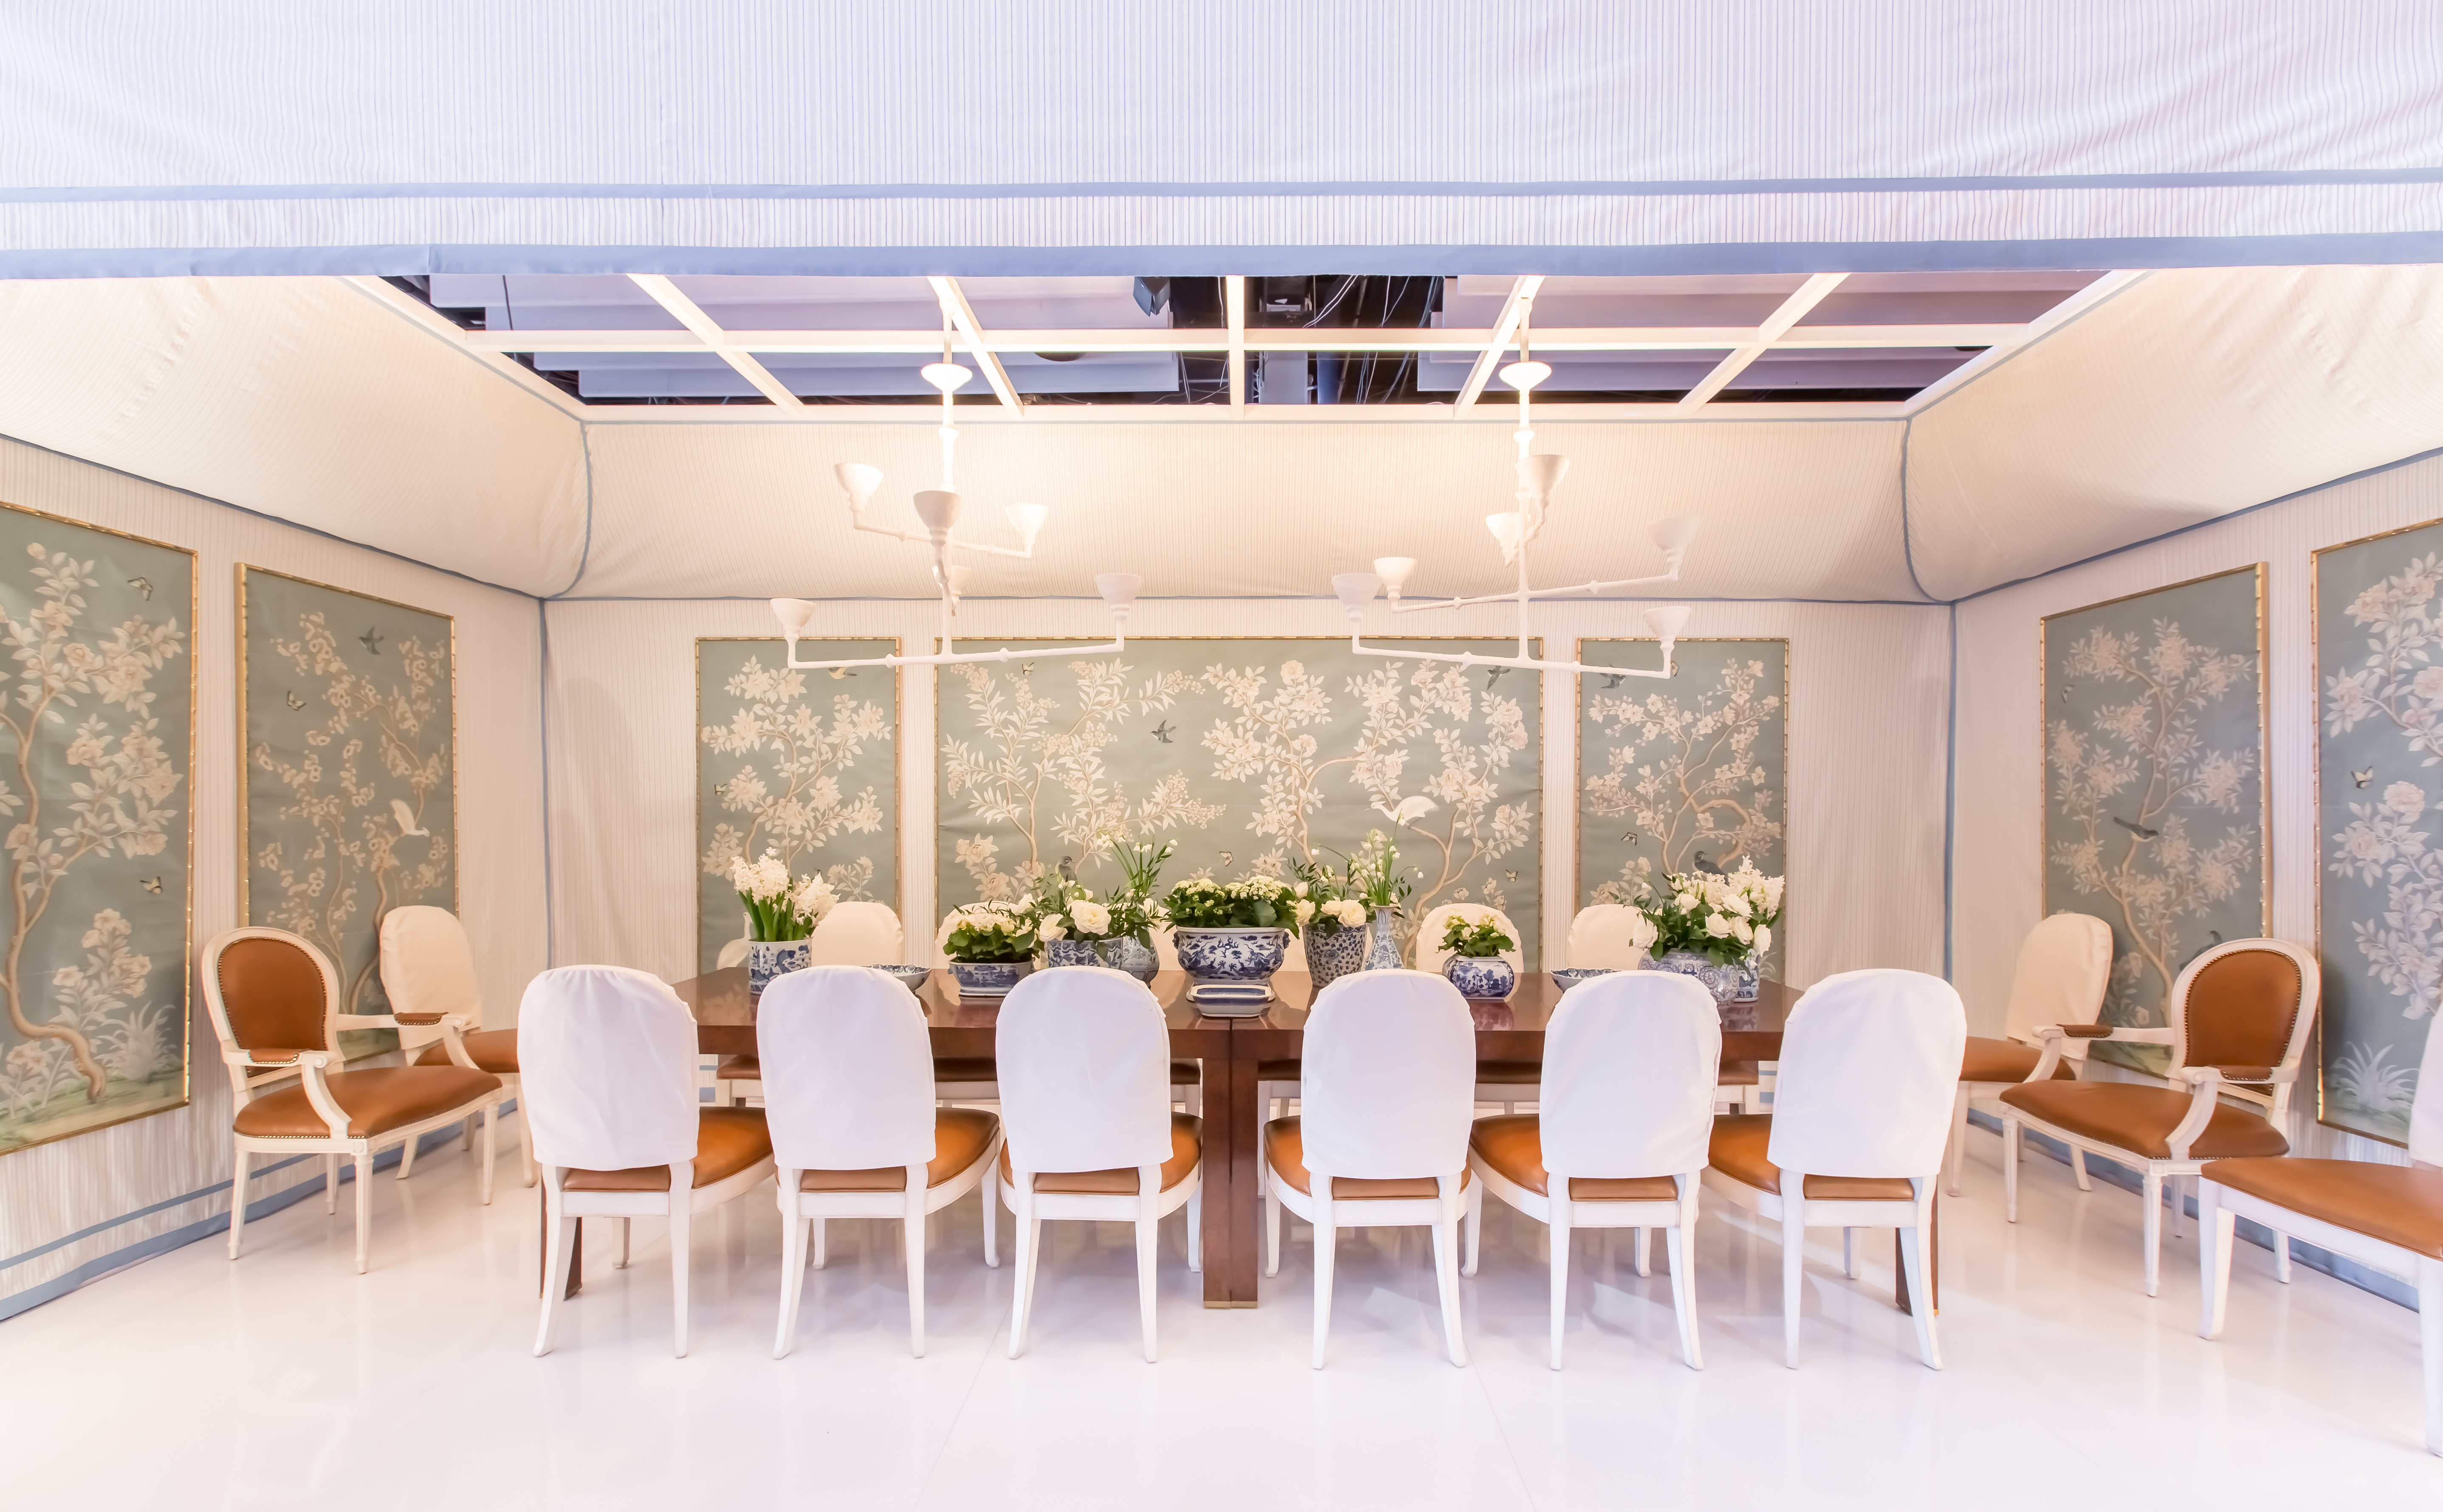 DIFFA: Dining By Design - Piers 92/94